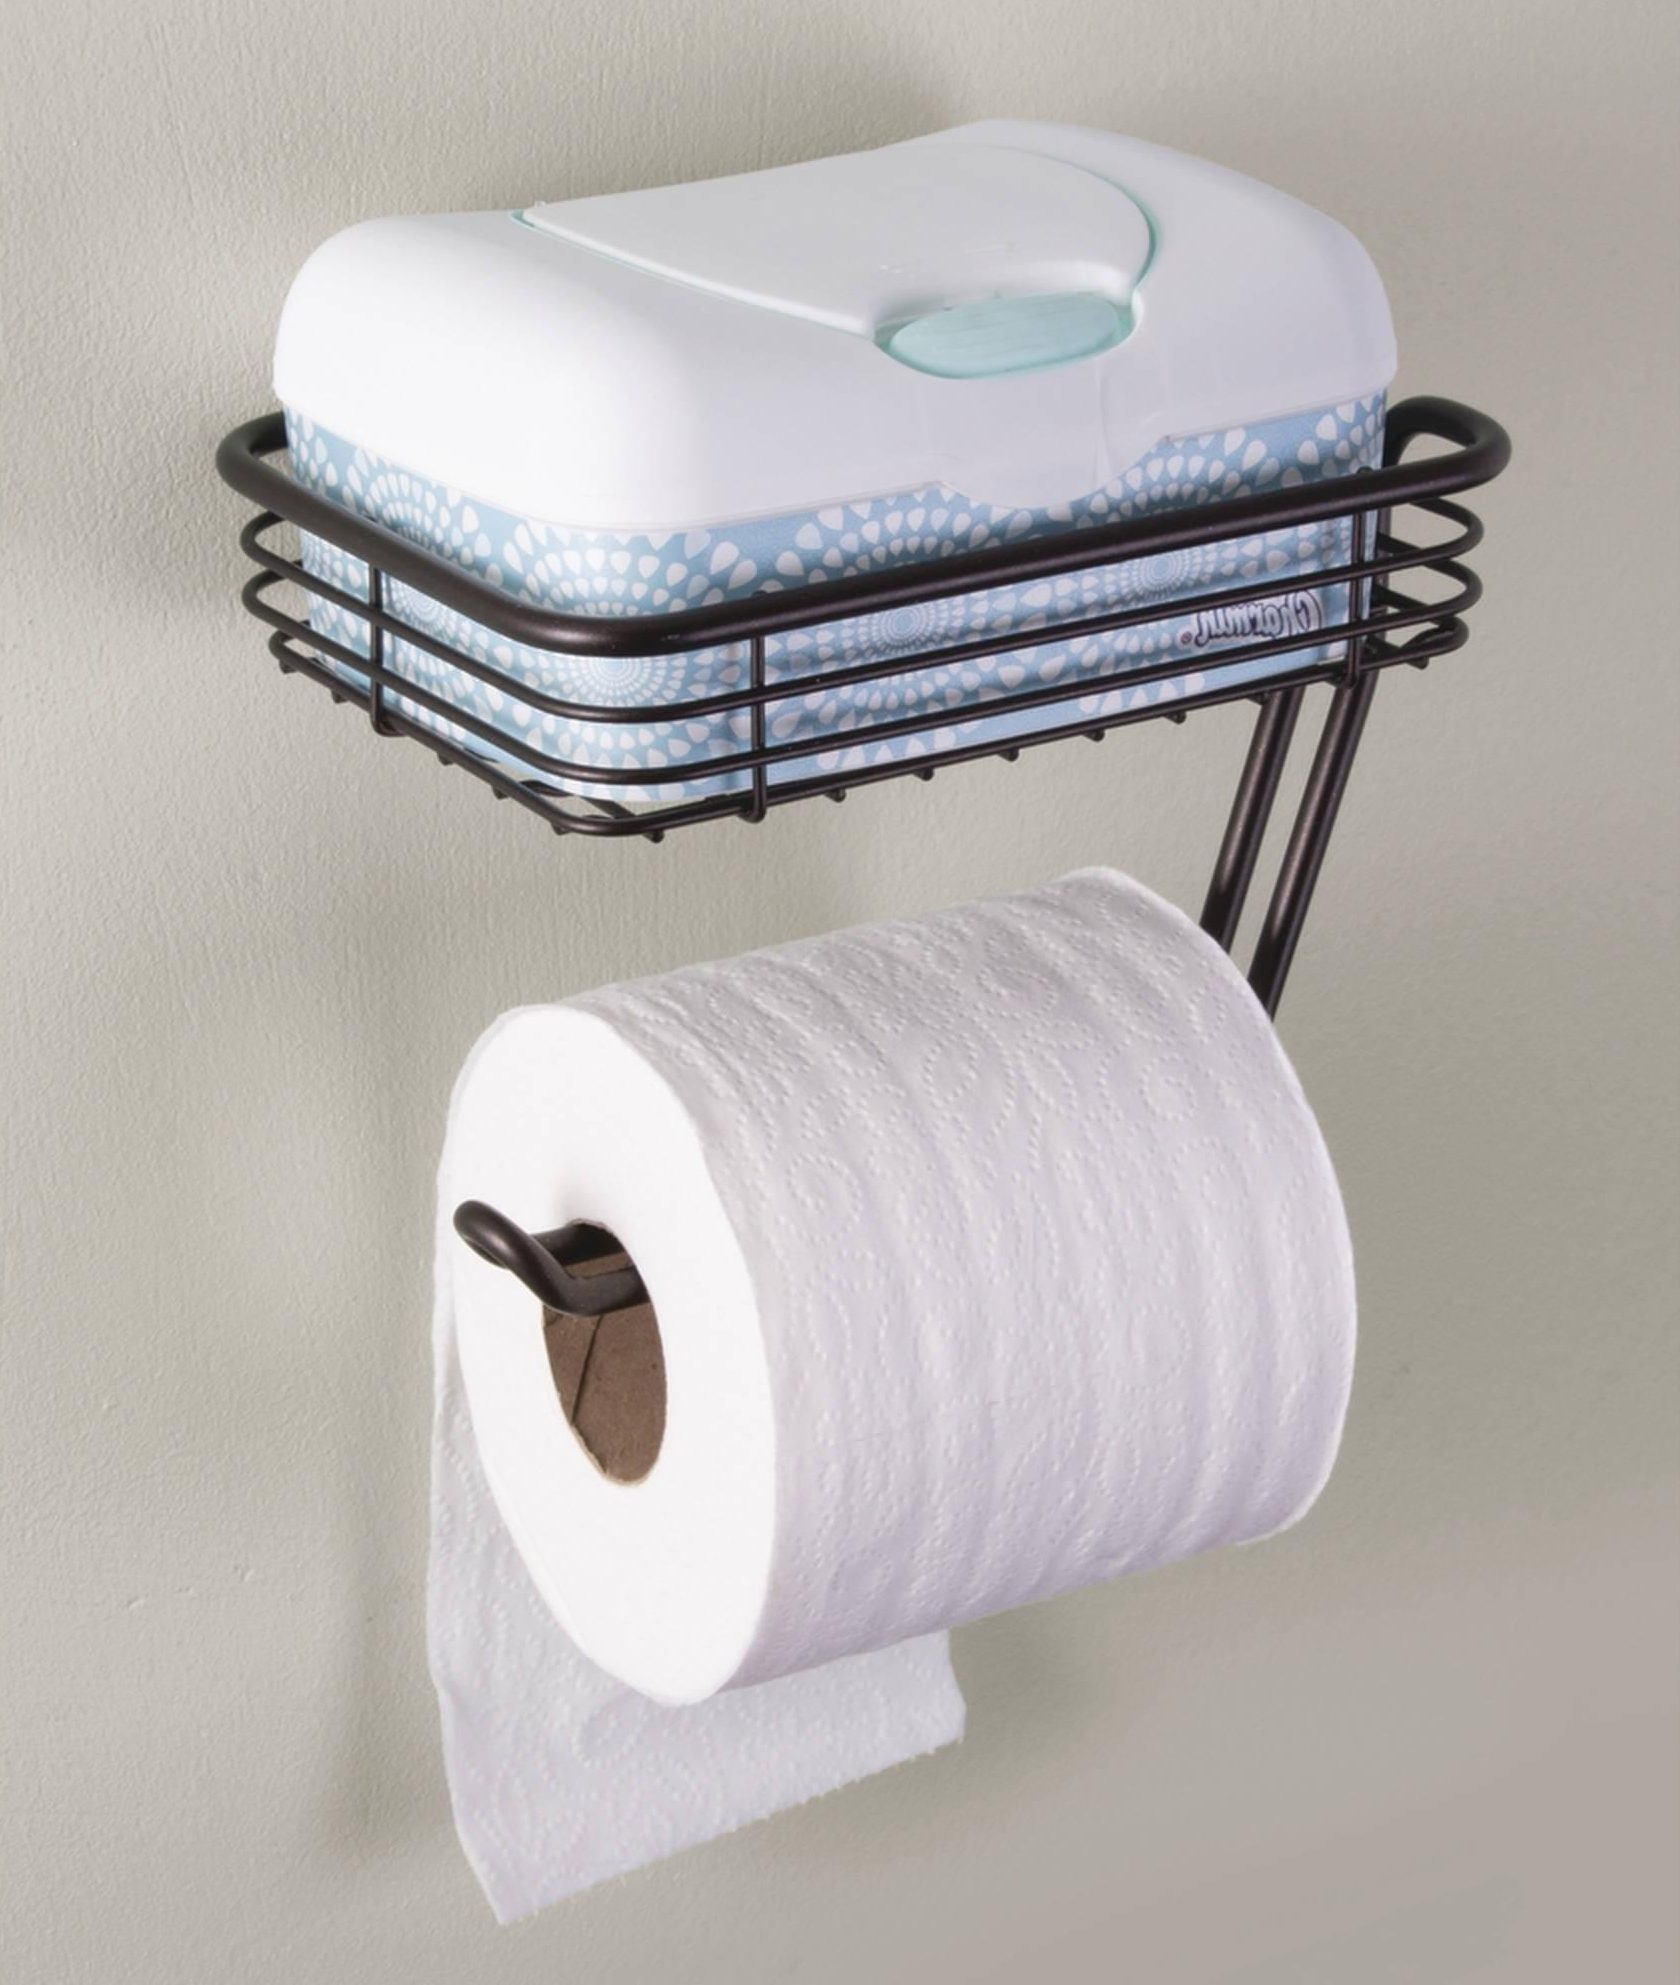 Low-Budget-Toilet-Paper-holder